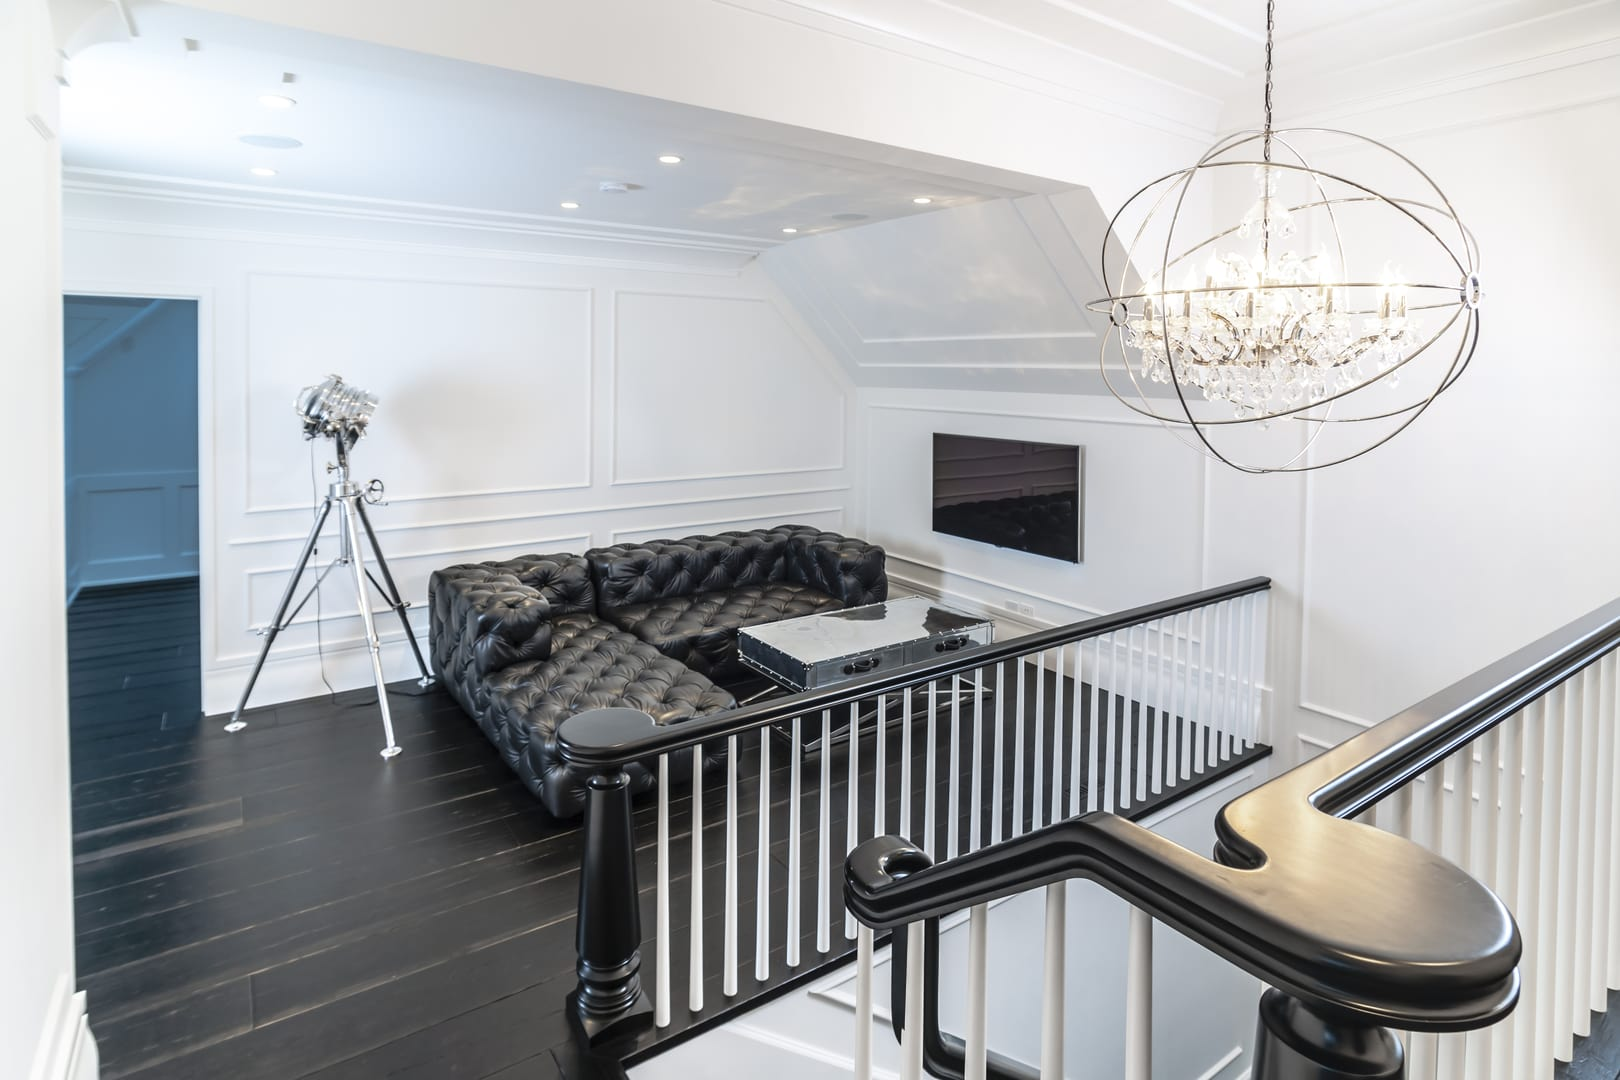 Black Furniture: Interior Design Photo Ideas. White room trim and the black furniture is the successful union to make the design look stylish and refined